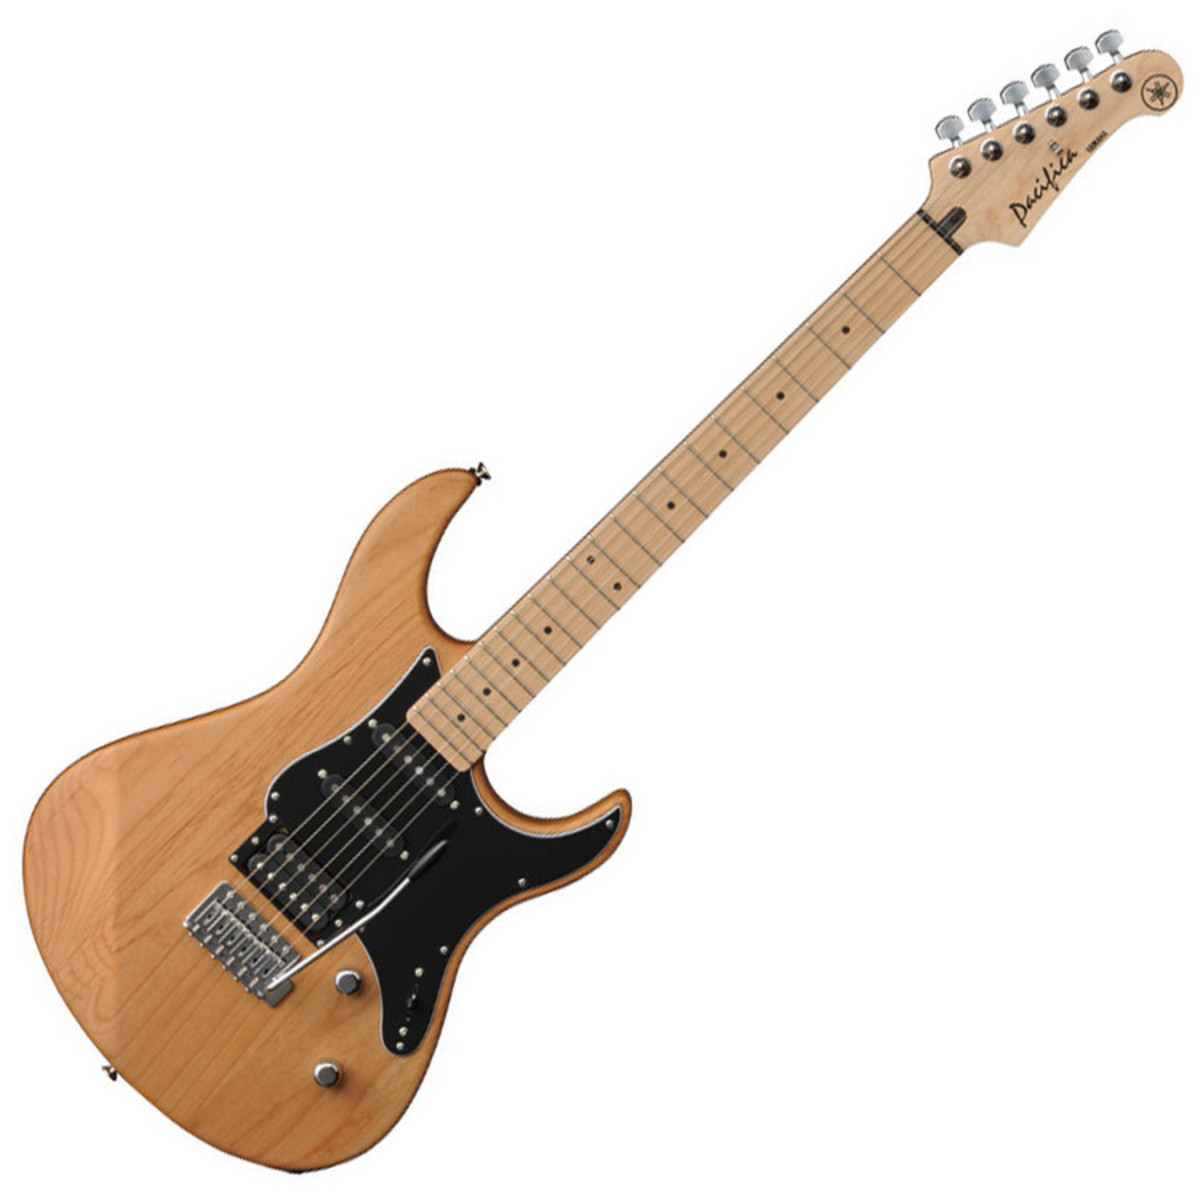 Lot 7 - Yamaha PACIFICA PAC 112 VMX YNS Natural Maple Fingerboard RRP £279.99